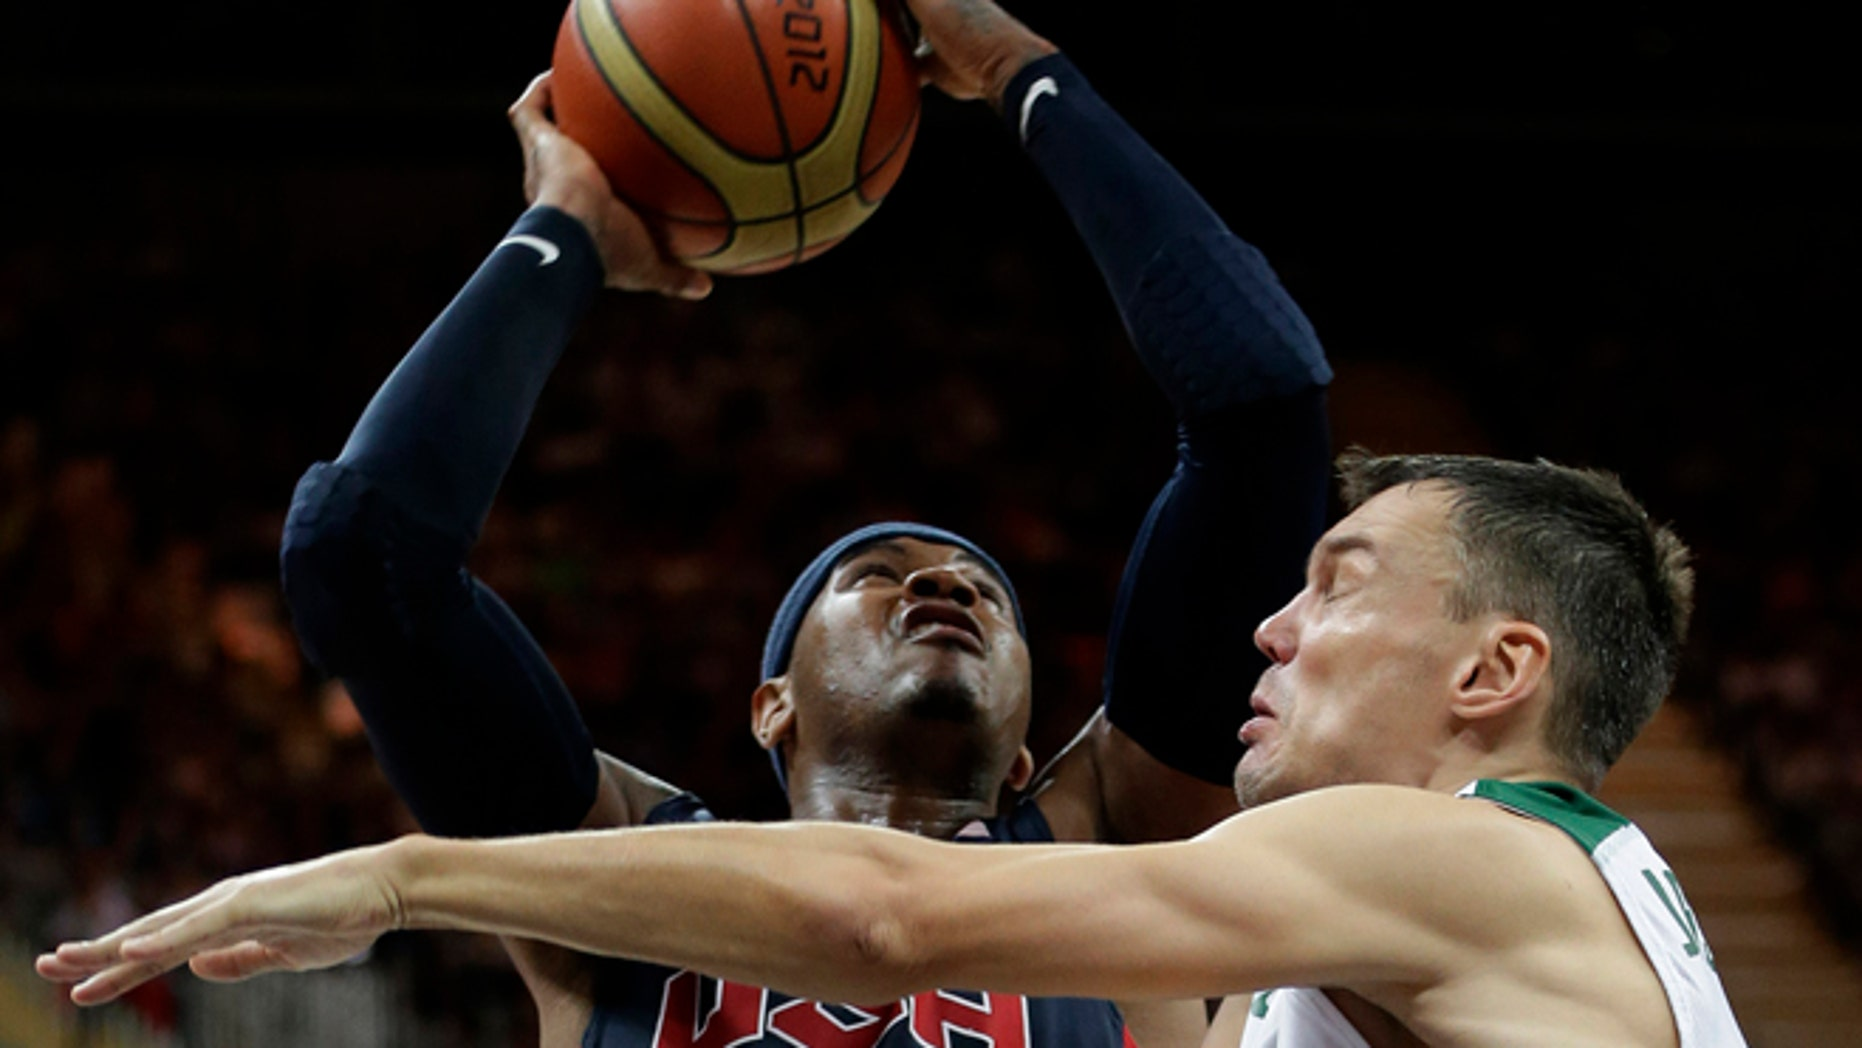 Aug. 4, 2012: USA's Carmelo Anthony is defended by Lithuania's Sarunas Jasikevicius, right, during a preliminary men's basketball game at the 2012 Summer Olympics in London.